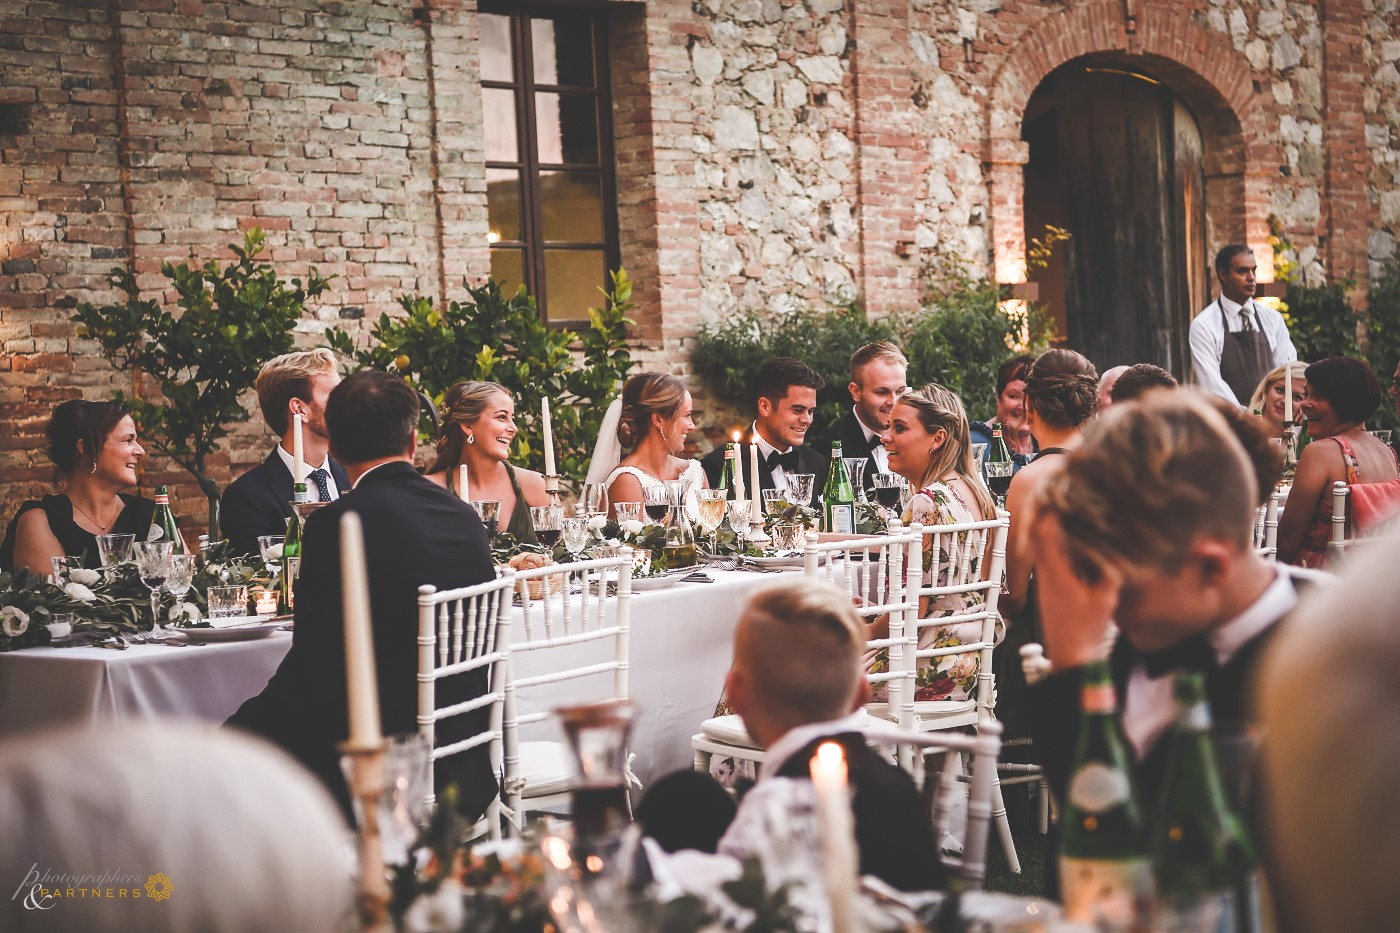 photographer_weddings_pienza_17.jpg